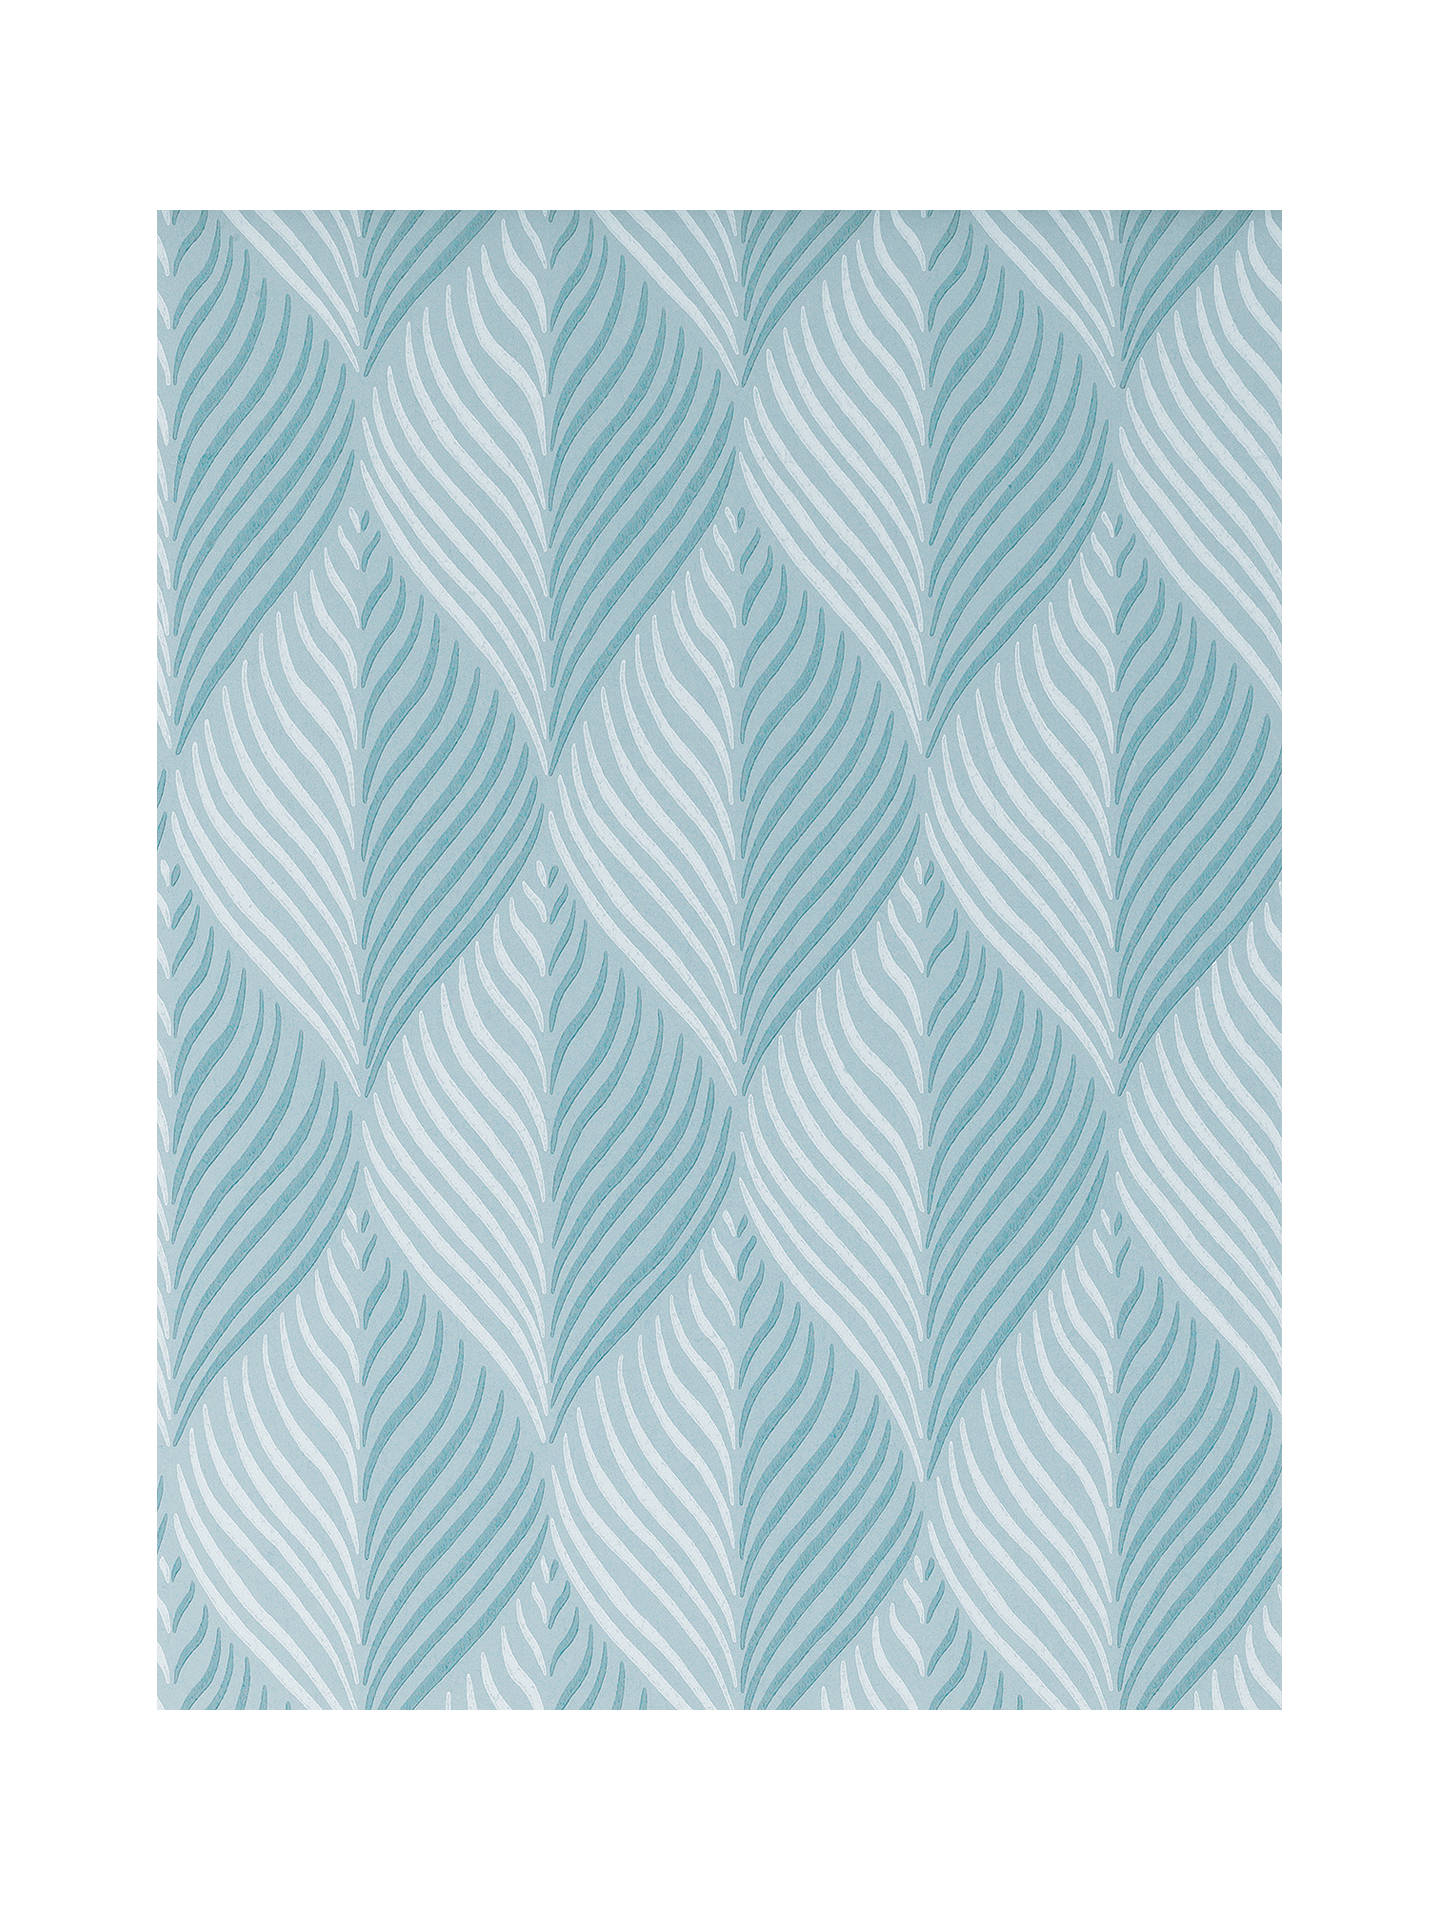 Buy Nina Campbell Bonnelles Wallpaper, NCW4352-03 Online at johnlewis.com